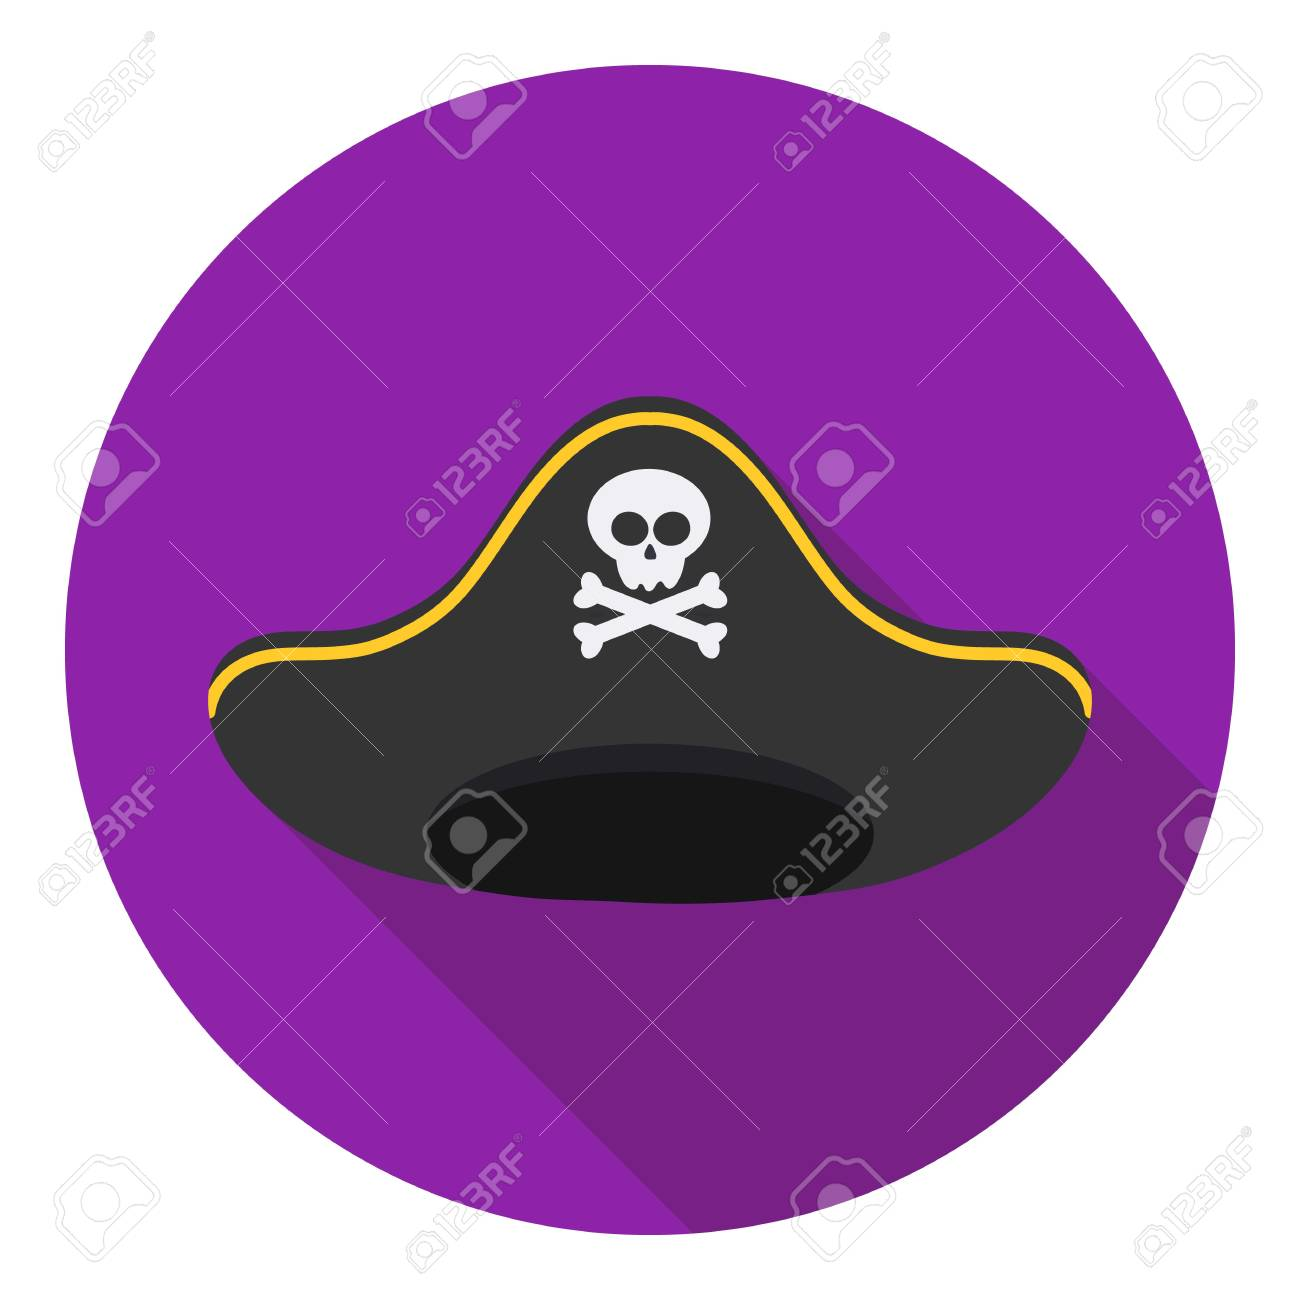 1dbb1cb4 Pirate hat icon in flat style isolated on white background. Hats symbol  vector illustration.